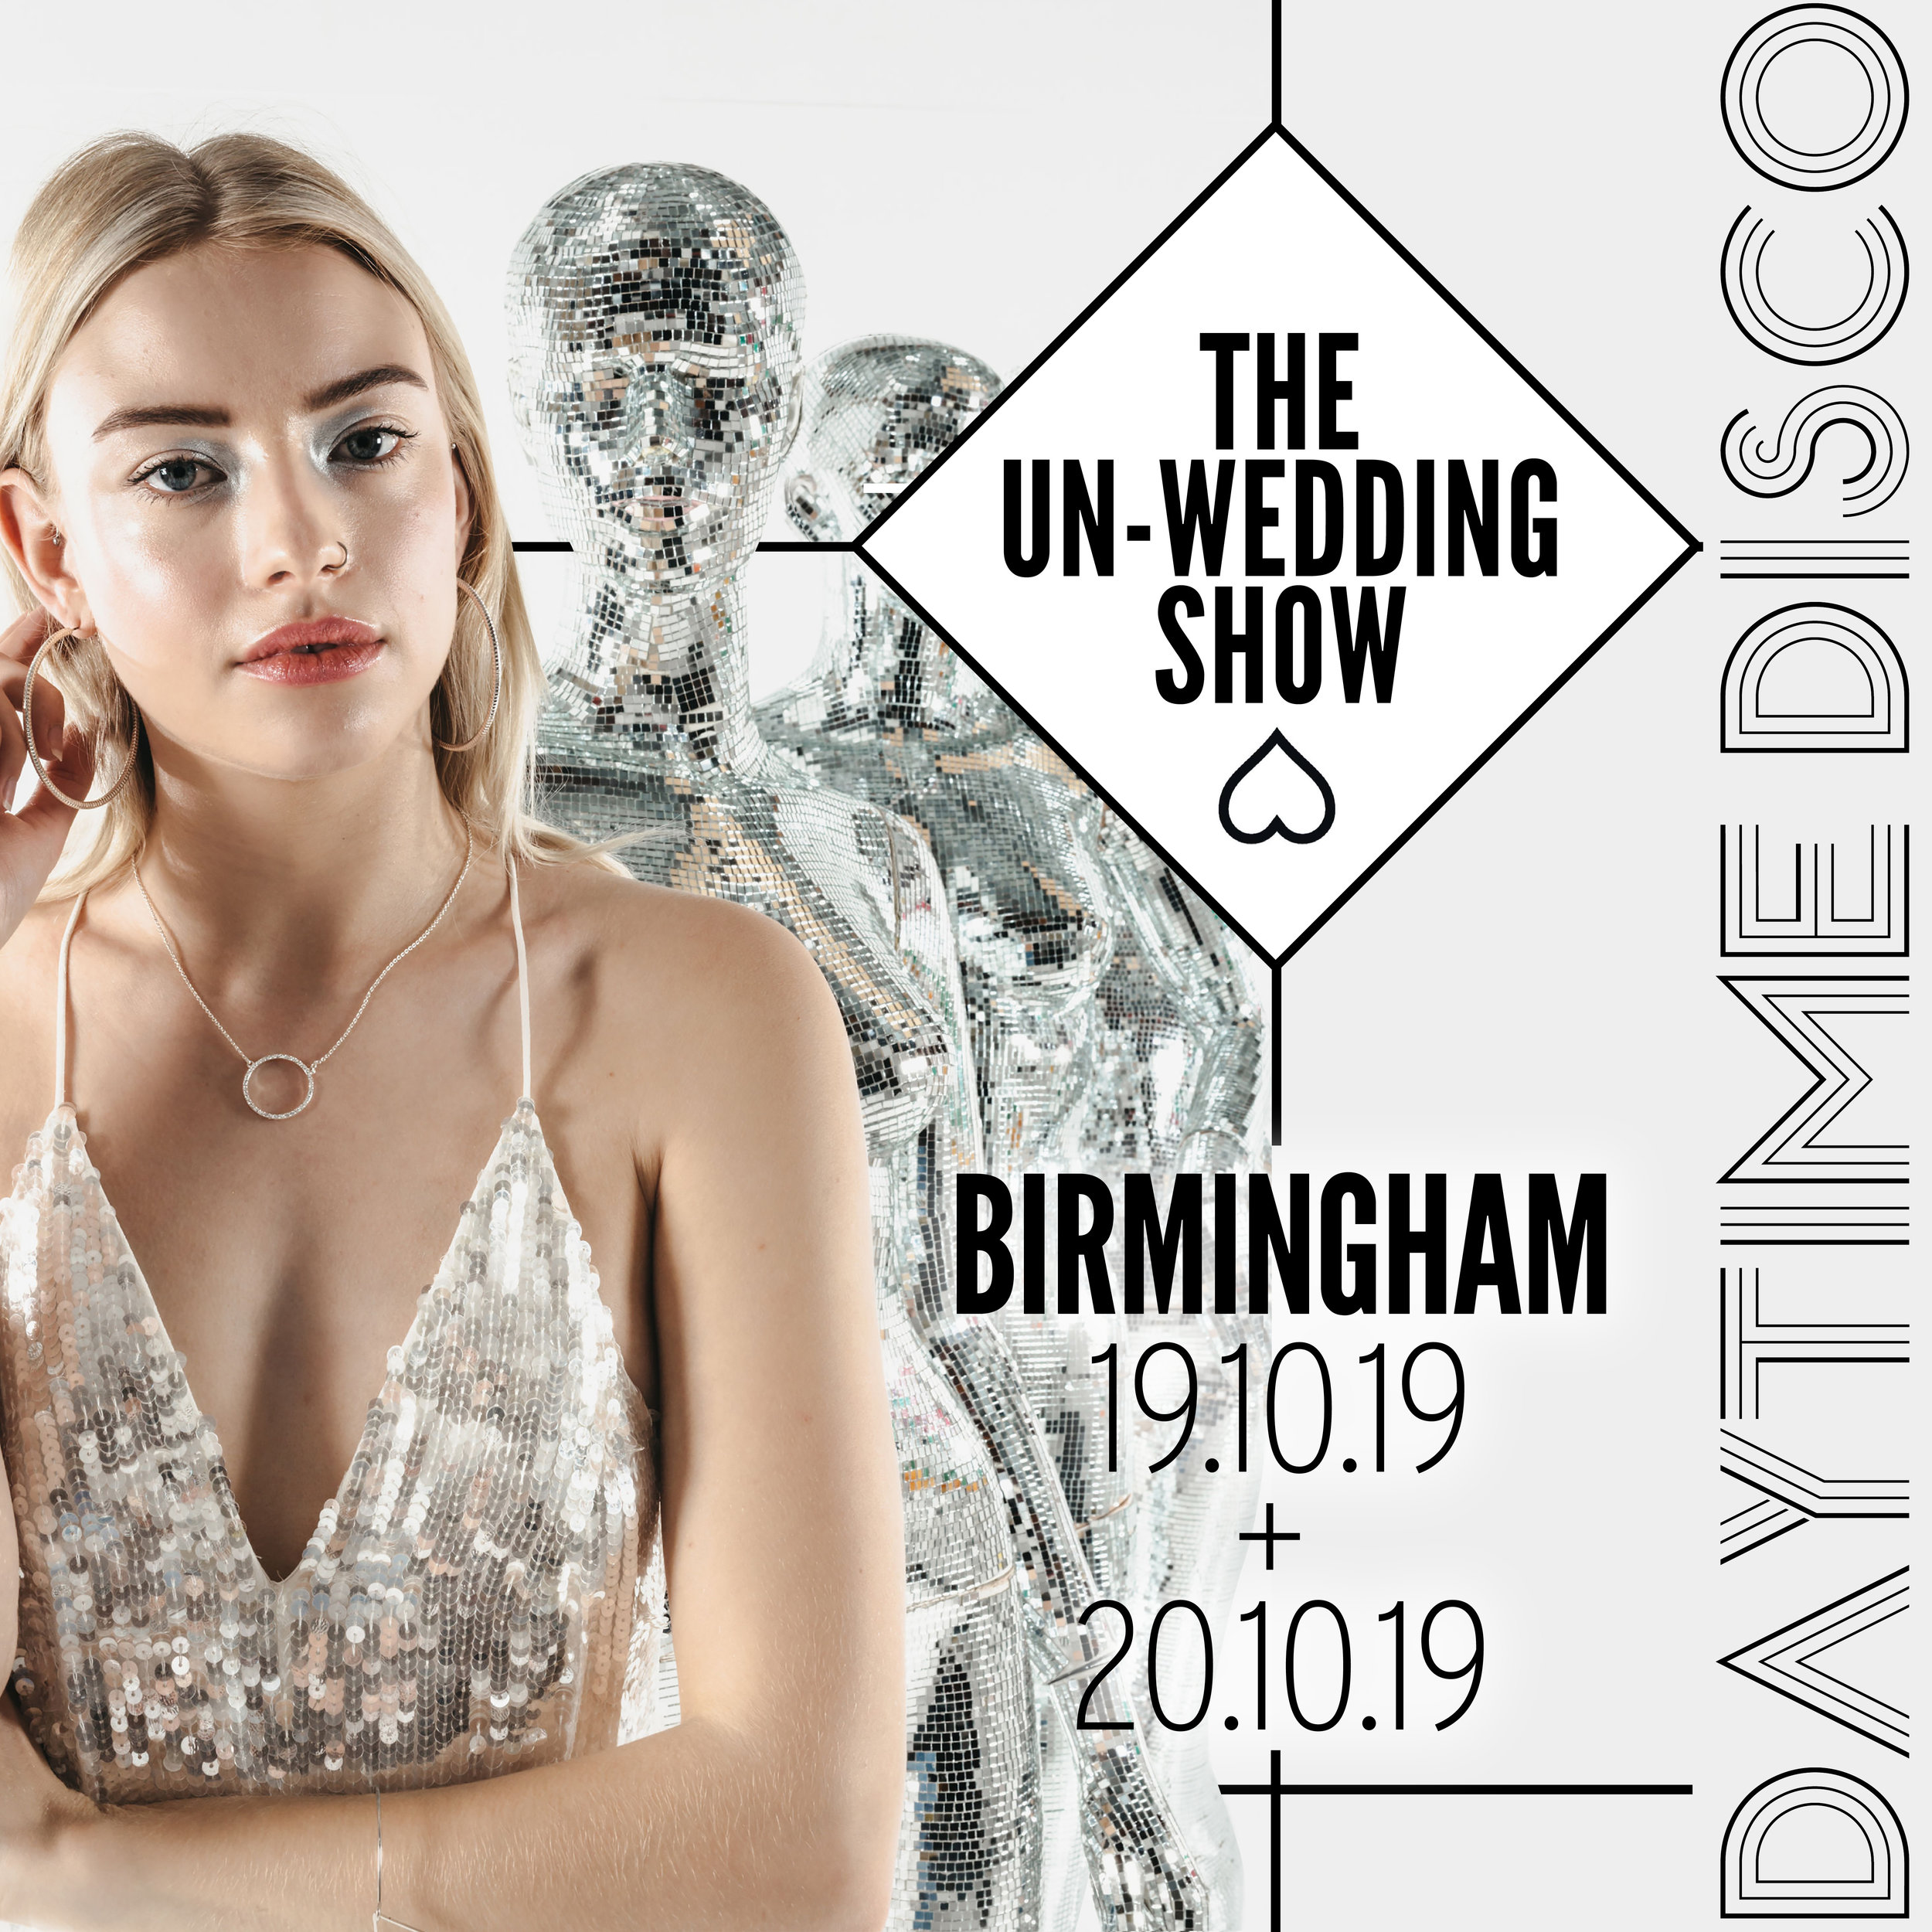 The Un-Wedding Show Birmingham.jpg